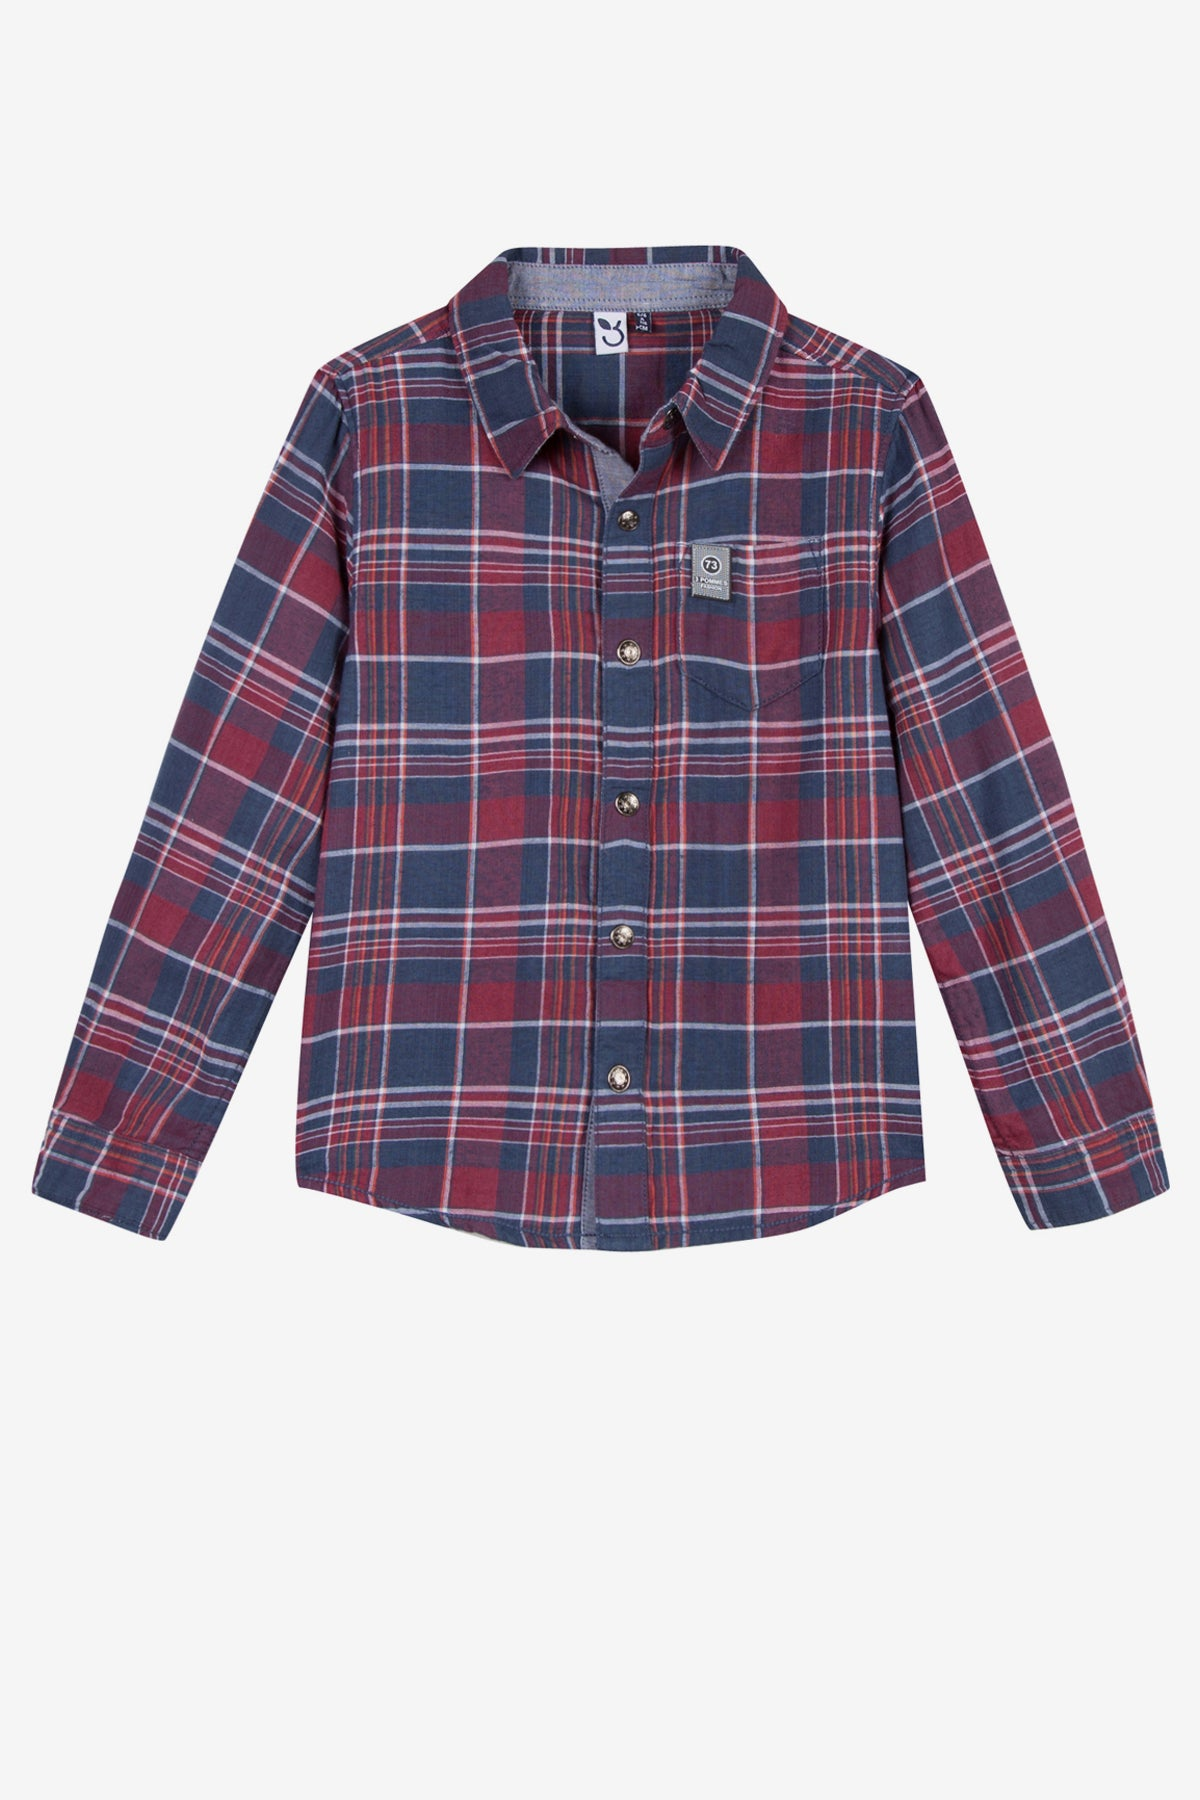 3pommes Boys Red Flannel Shirt